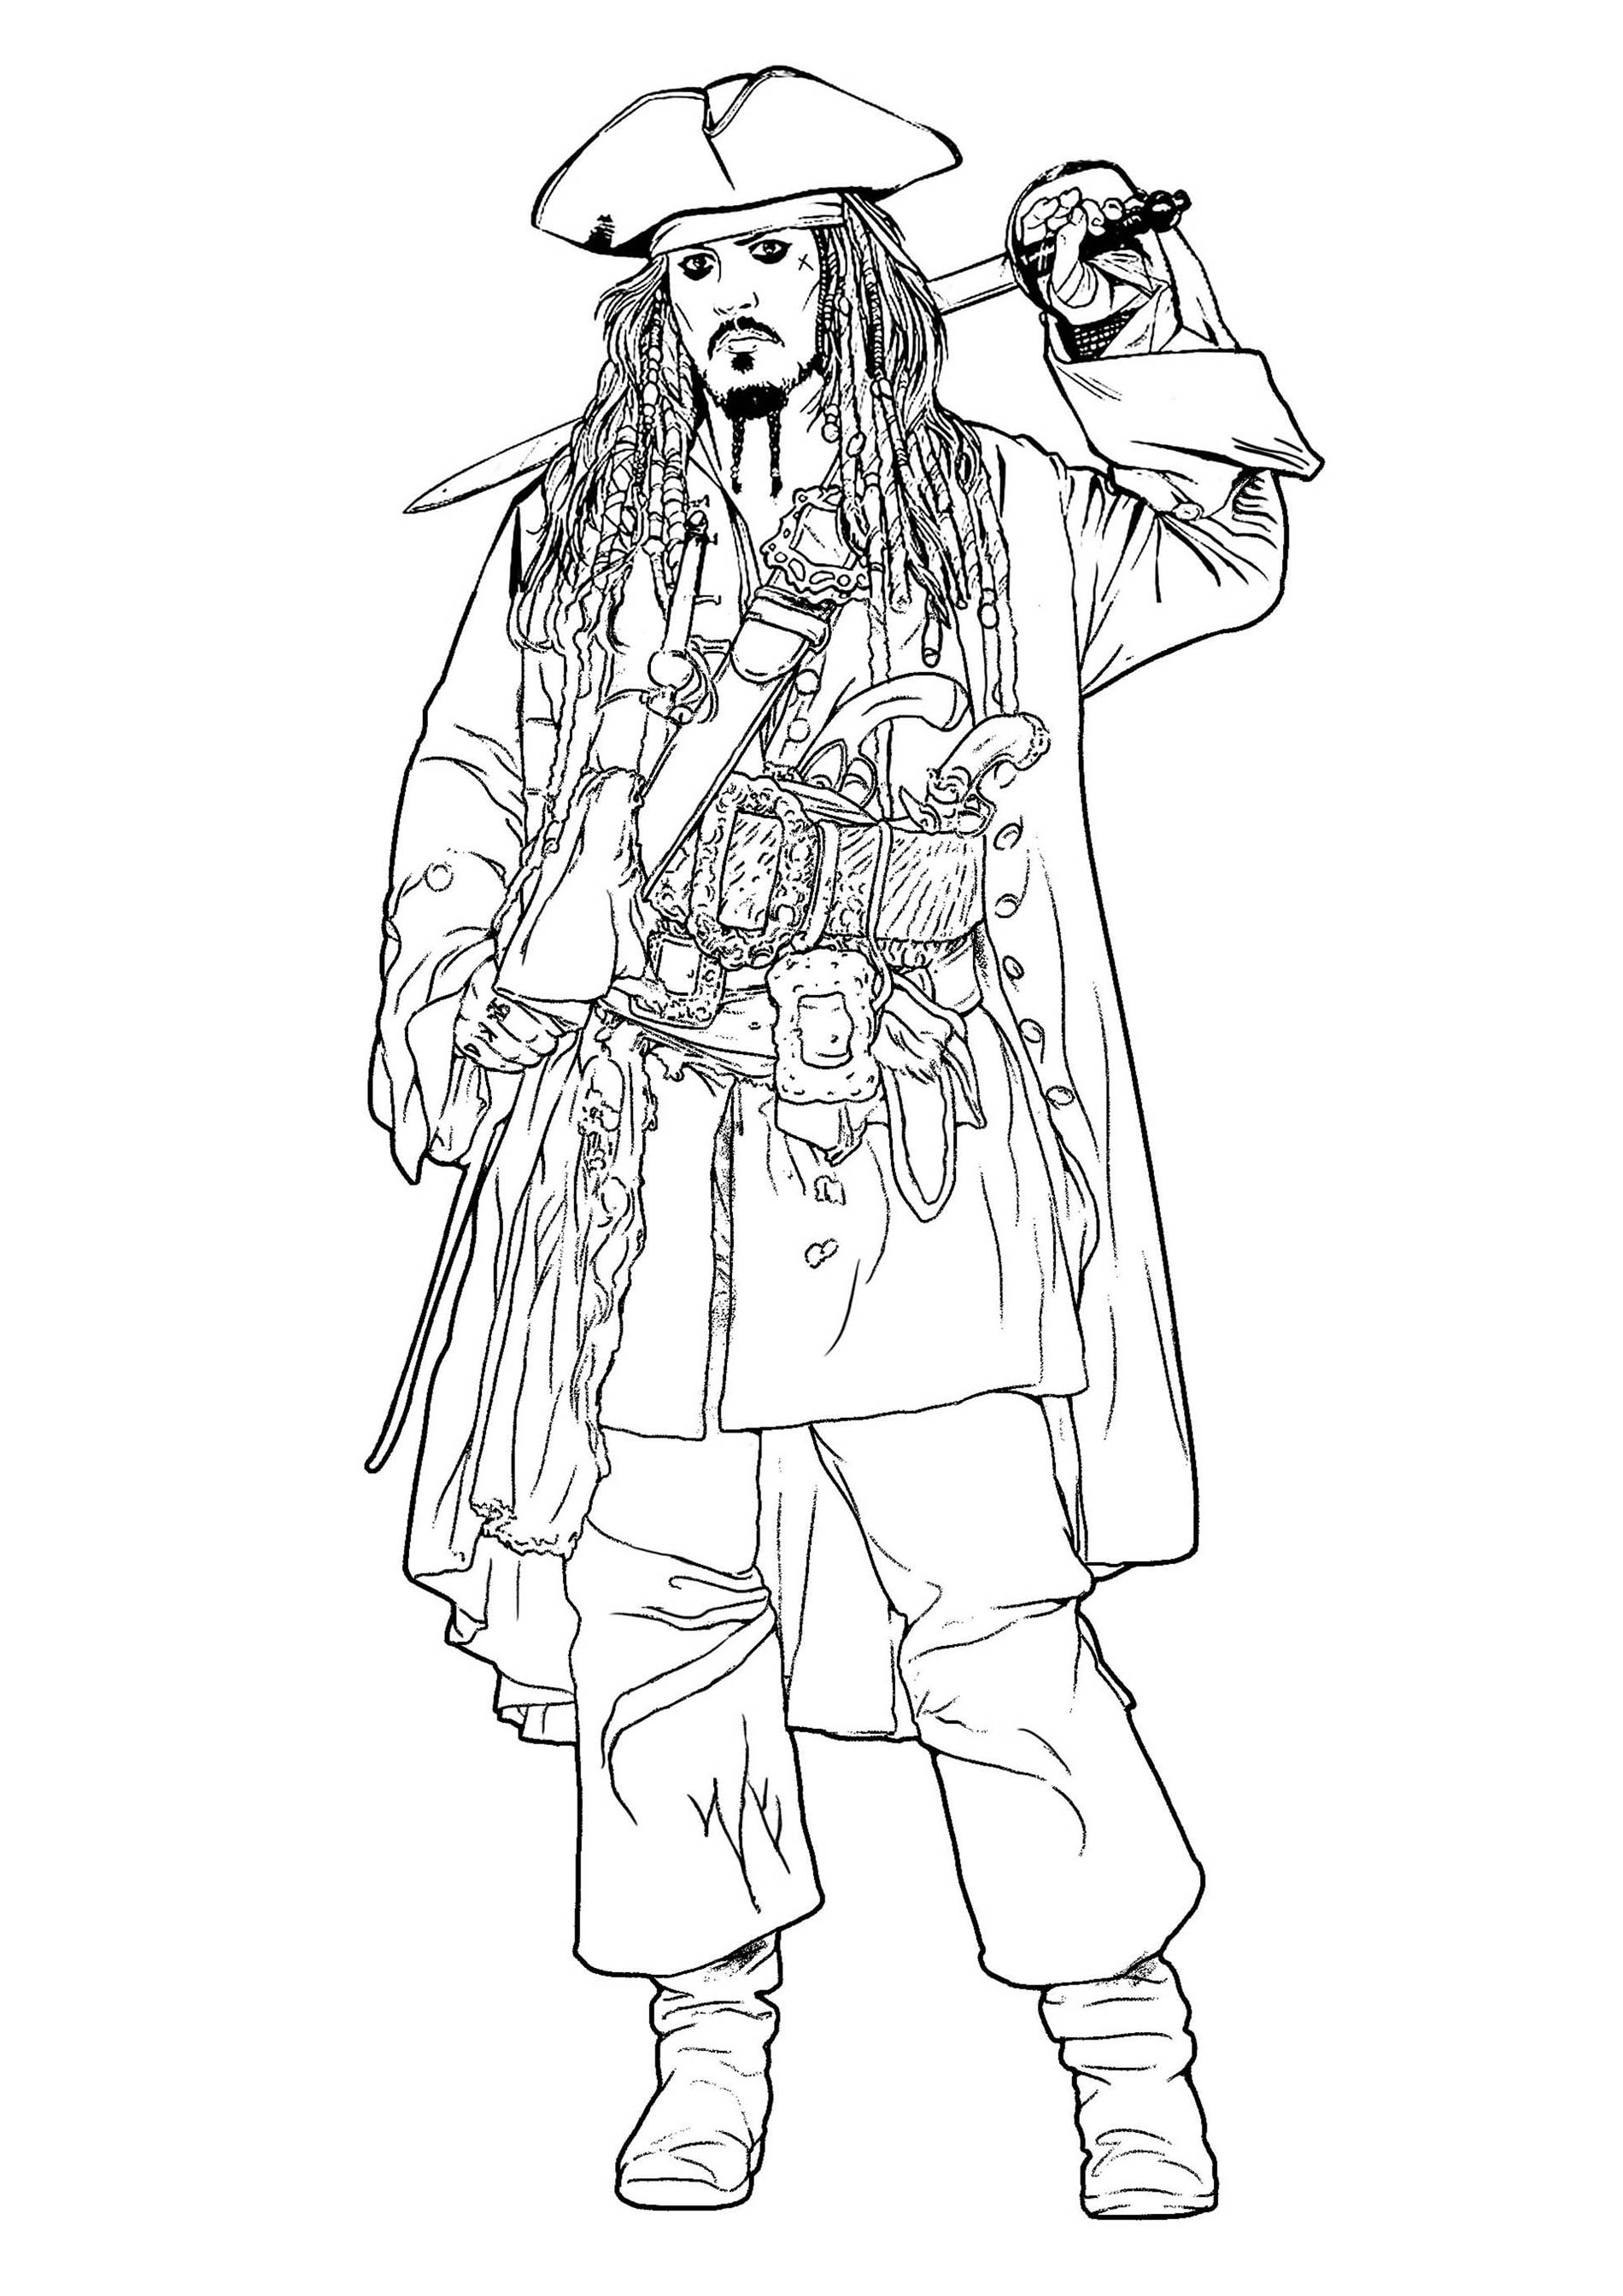 pirate coloring pages pirate color pages for kids coloring pirate pages